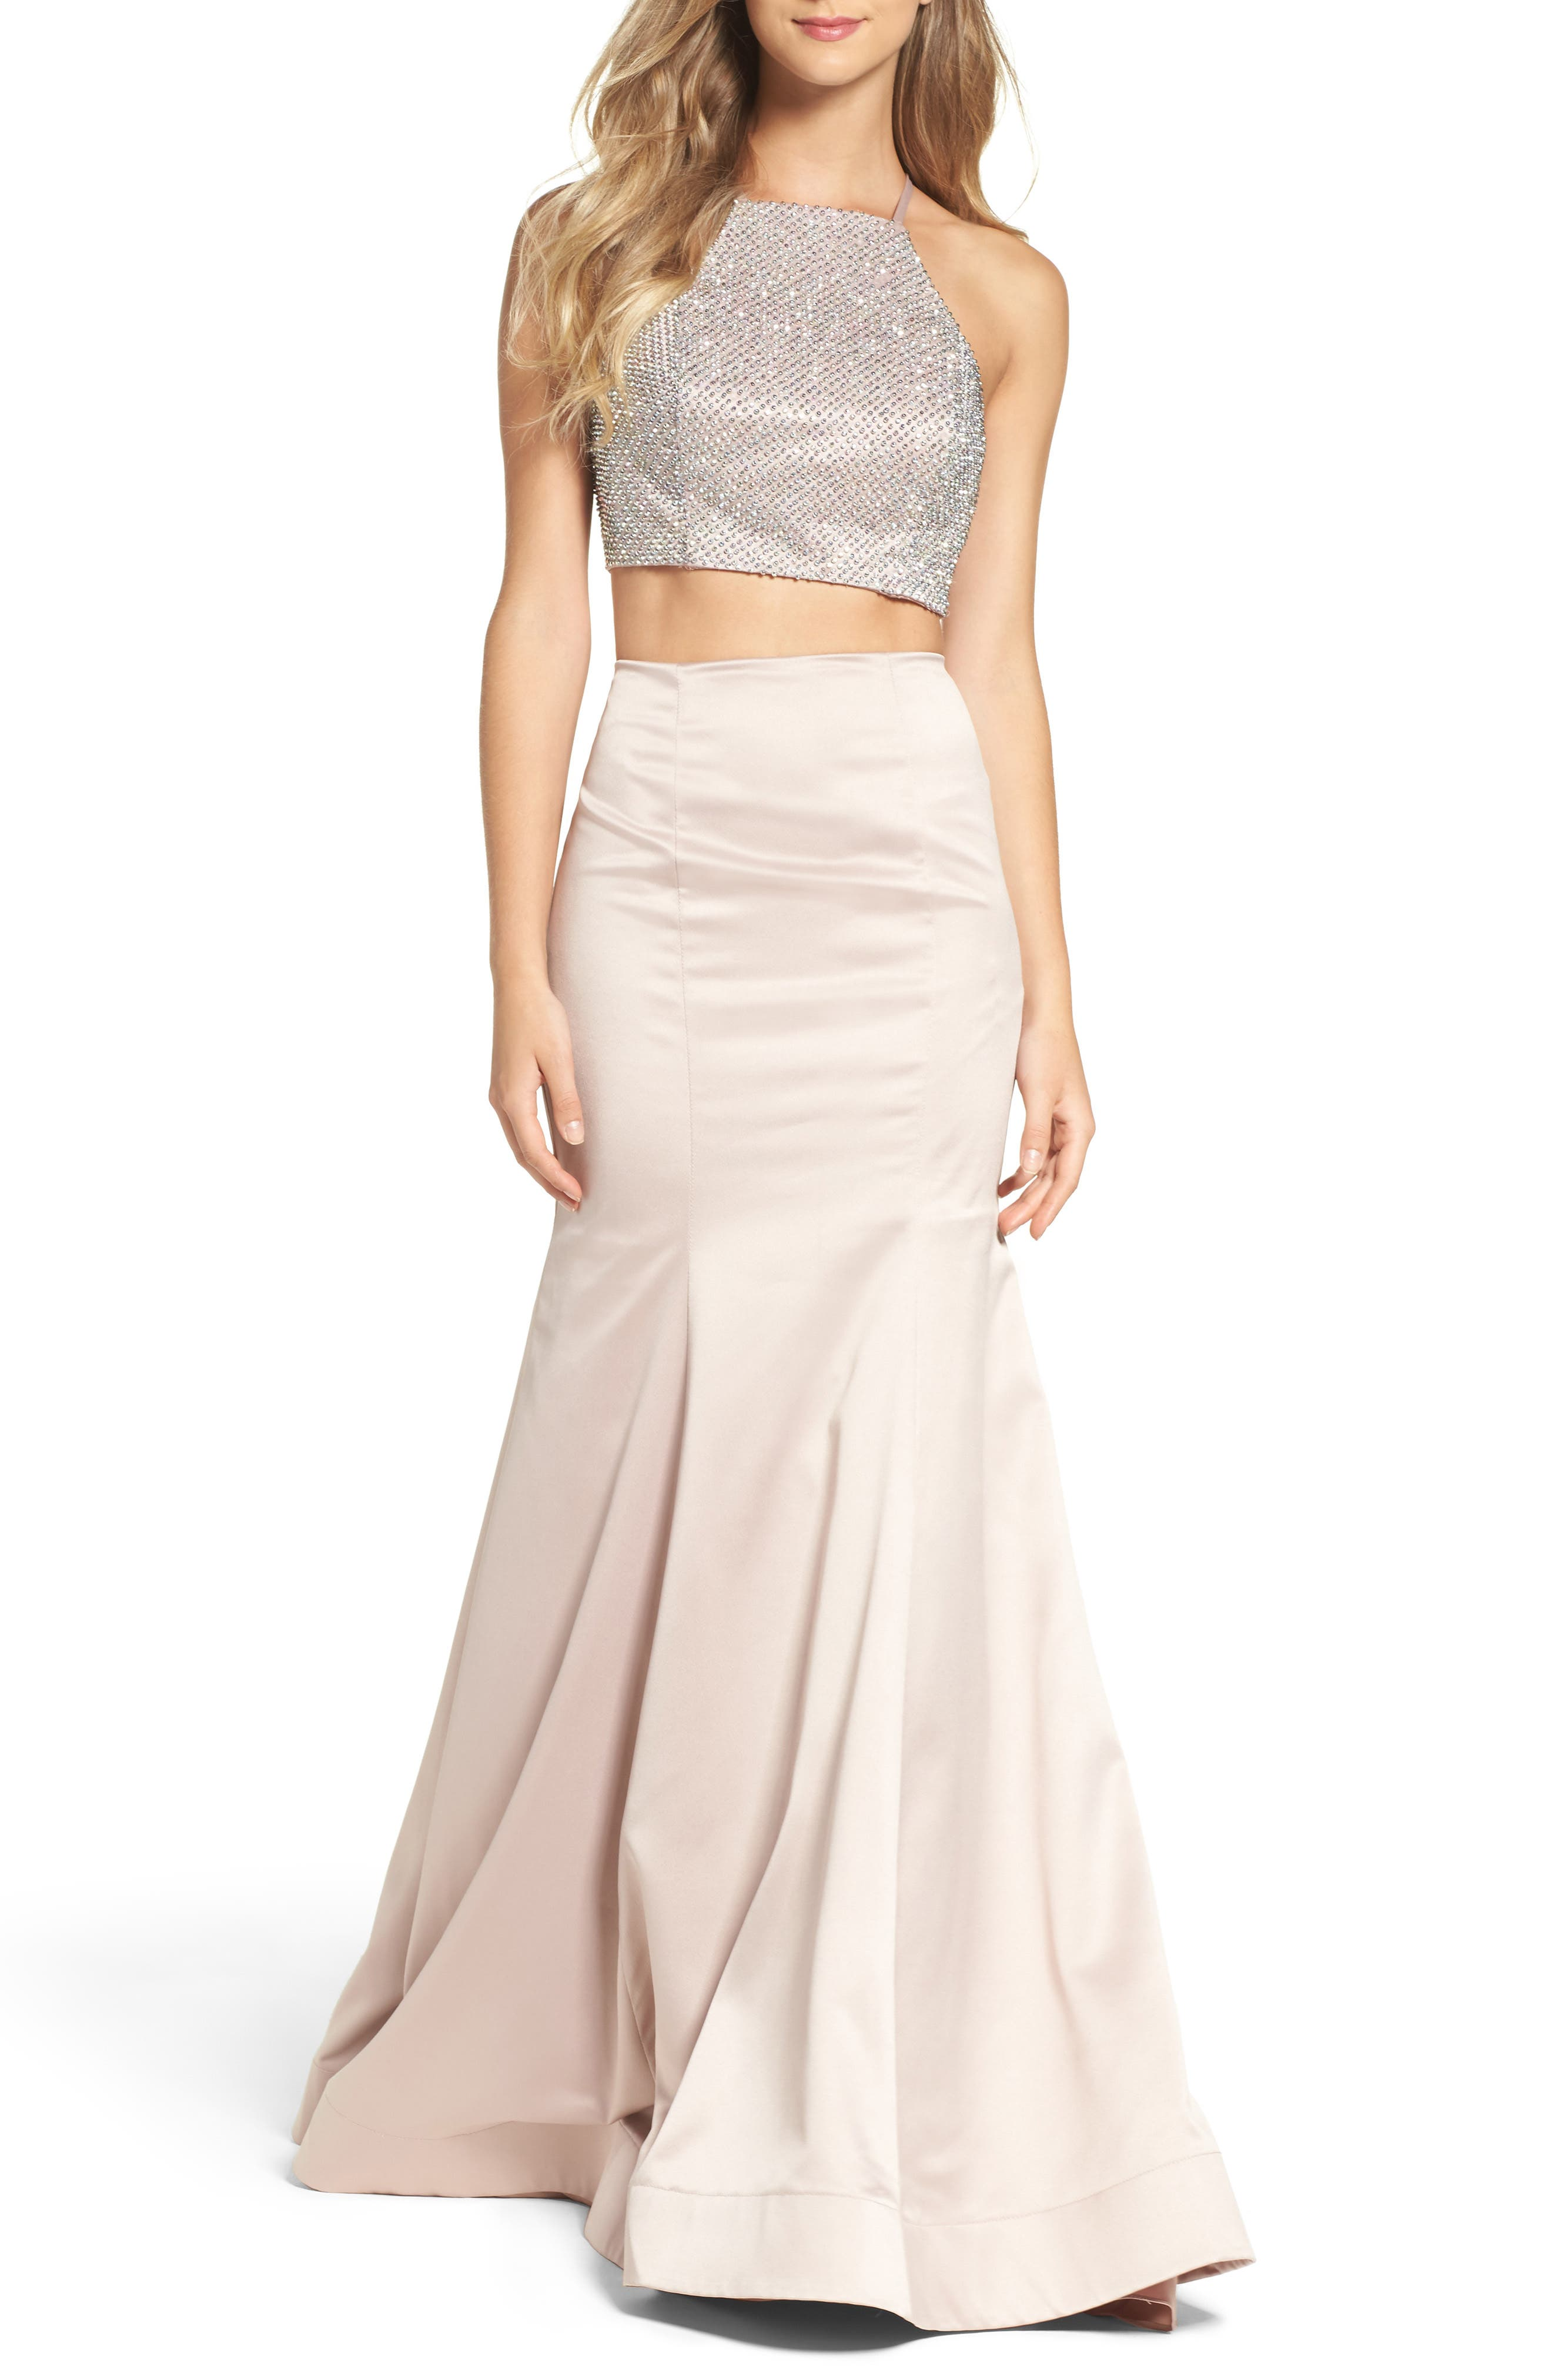 Alternate Image 1 Selected - La Femme Beaded Two-Piece Mermaid Gown